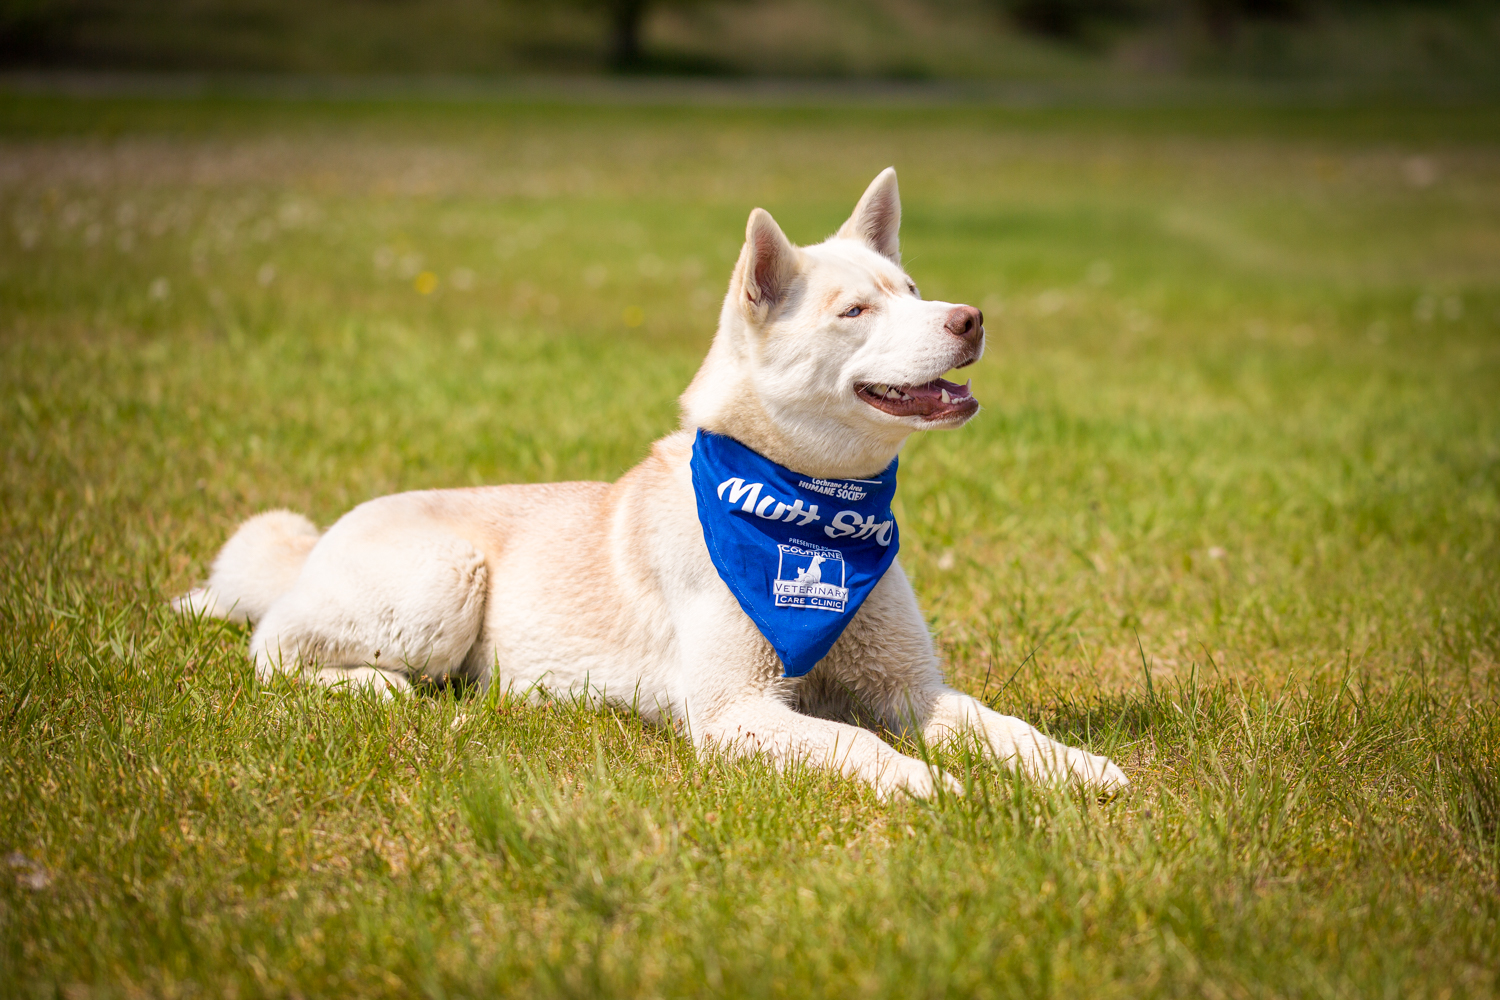 The_Dog_with_a_Bow_Photography_Cochrane_Humane_Mutt_Strut-3.jpg